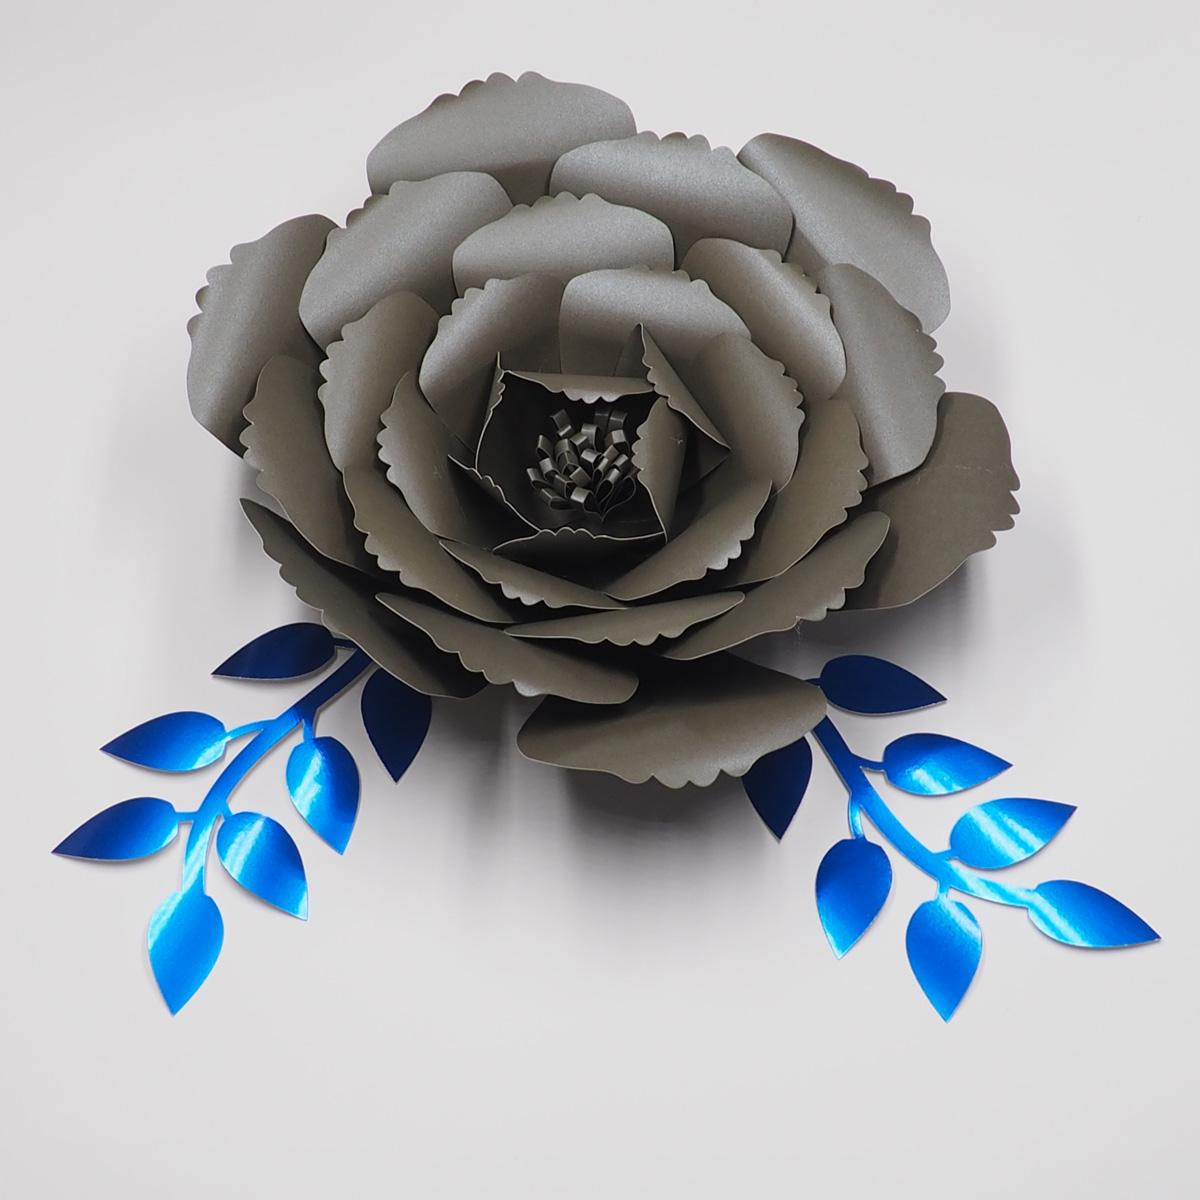 Flower leaves giant paper flowers special event retail stores flower leaves giant paper flowers special event retail stores galleries fashion and trade shows nurseries paper flower wedding decorations home deco izmirmasajfo